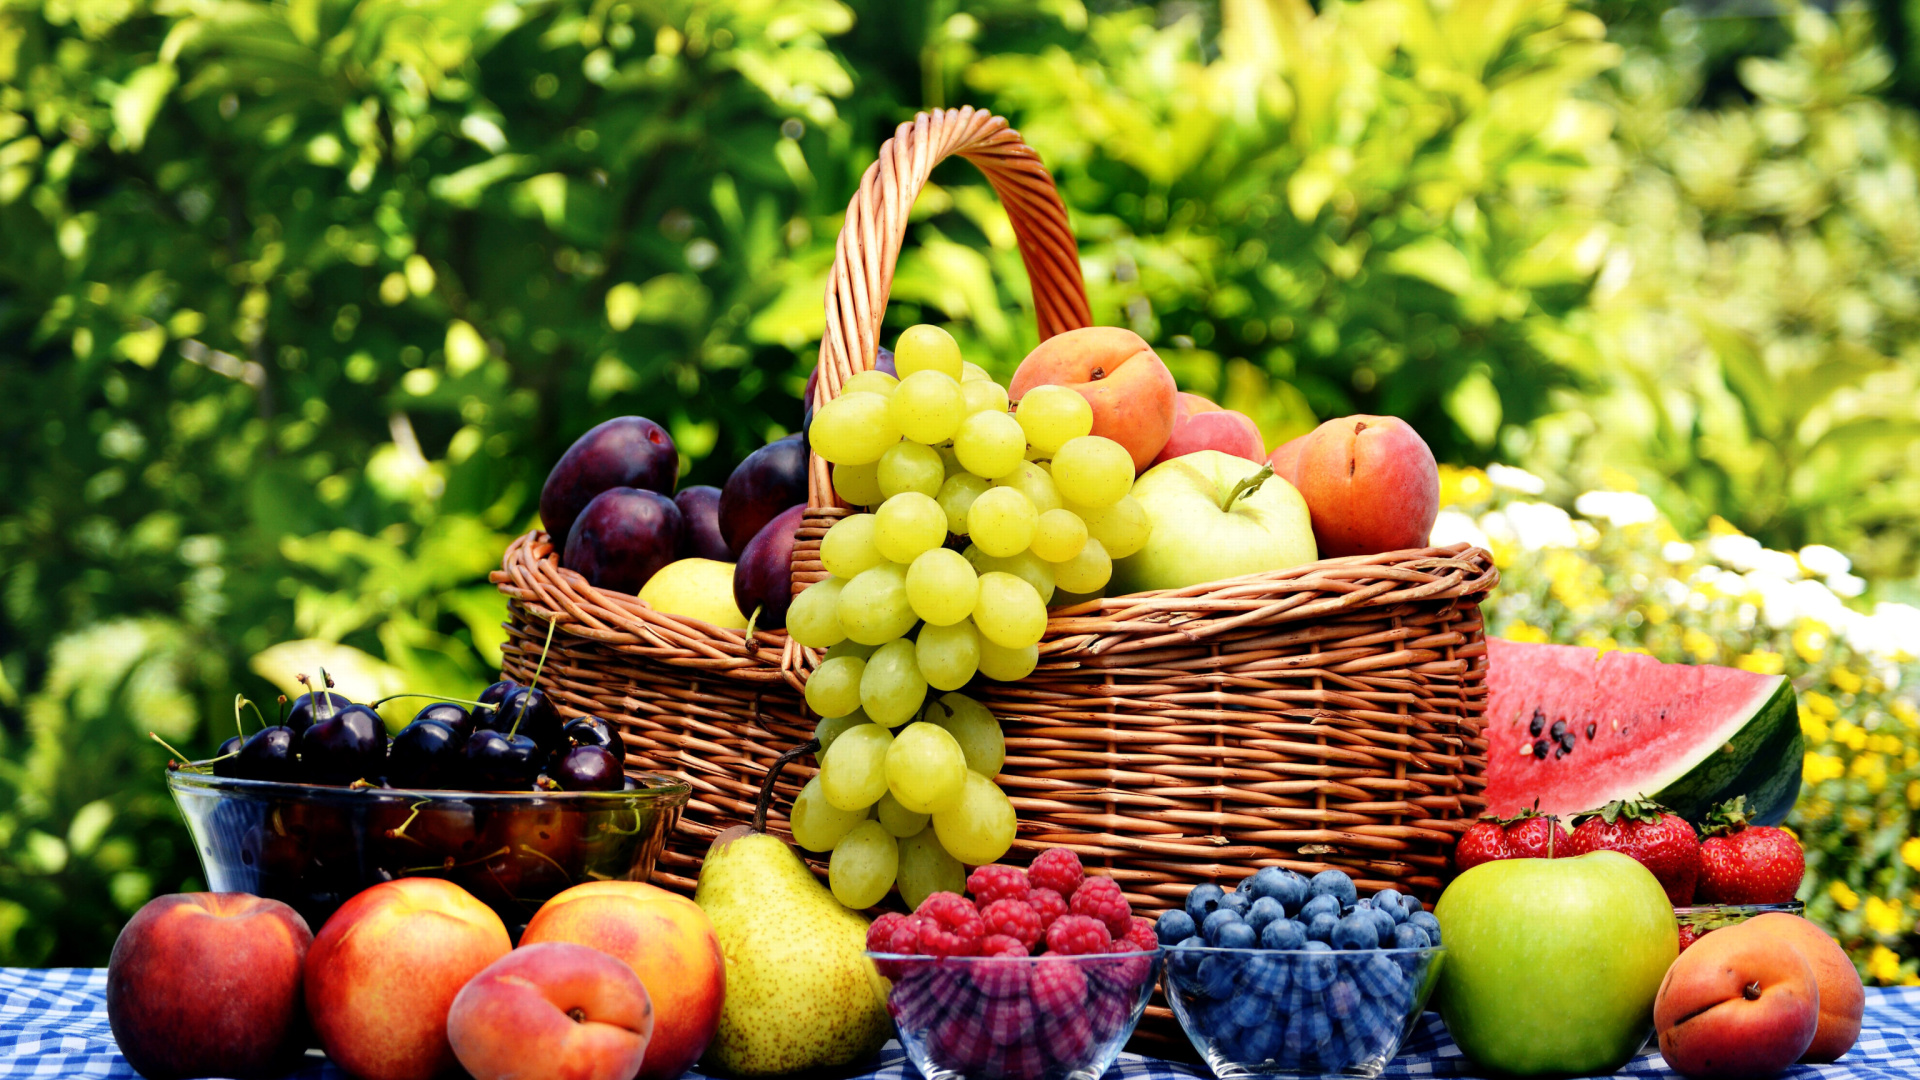 Organic Fruit Gift Basket Wallpaper for 1920x1080